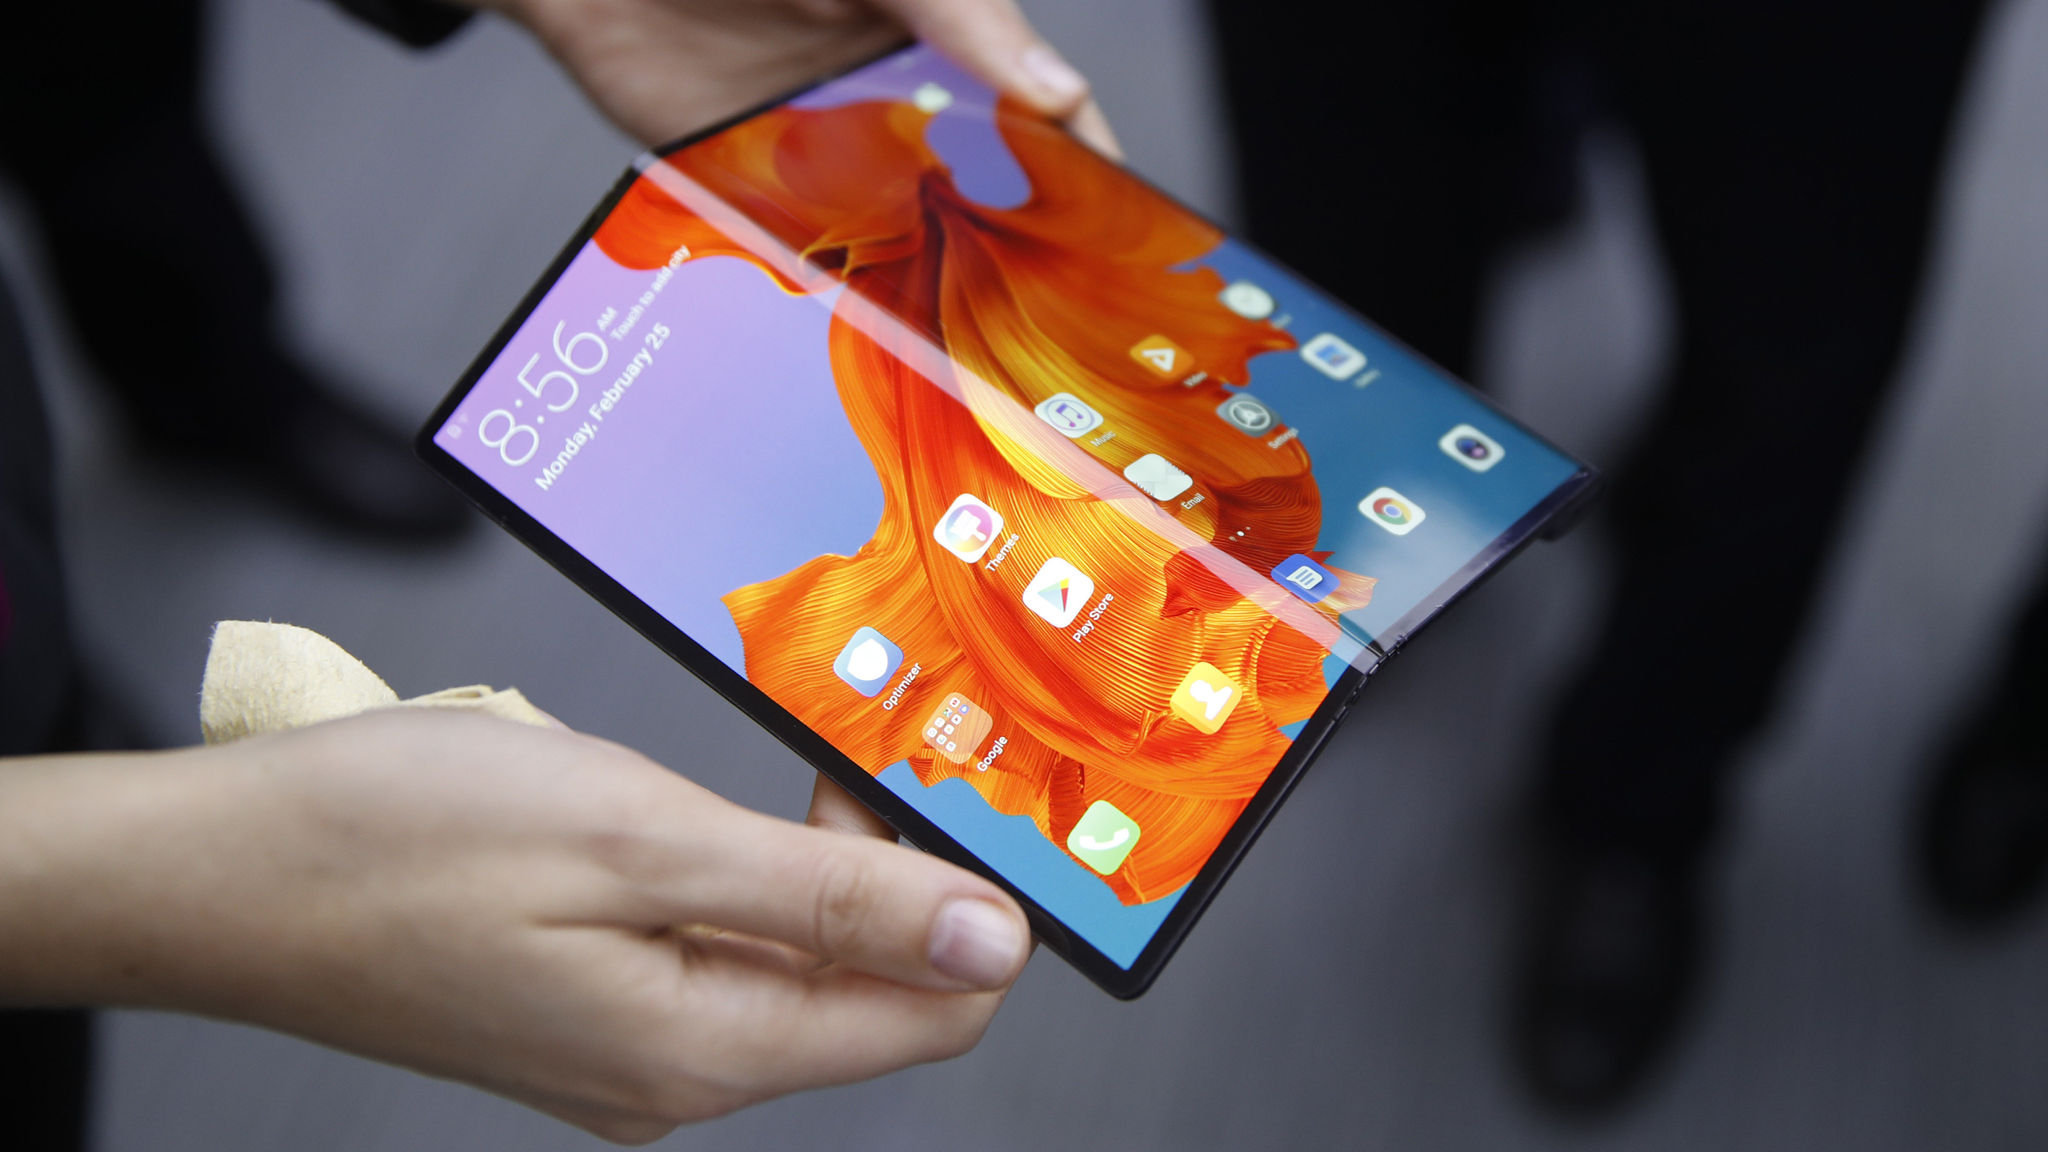 Huawei Mate X: One day with this foldable phone and I'm all in